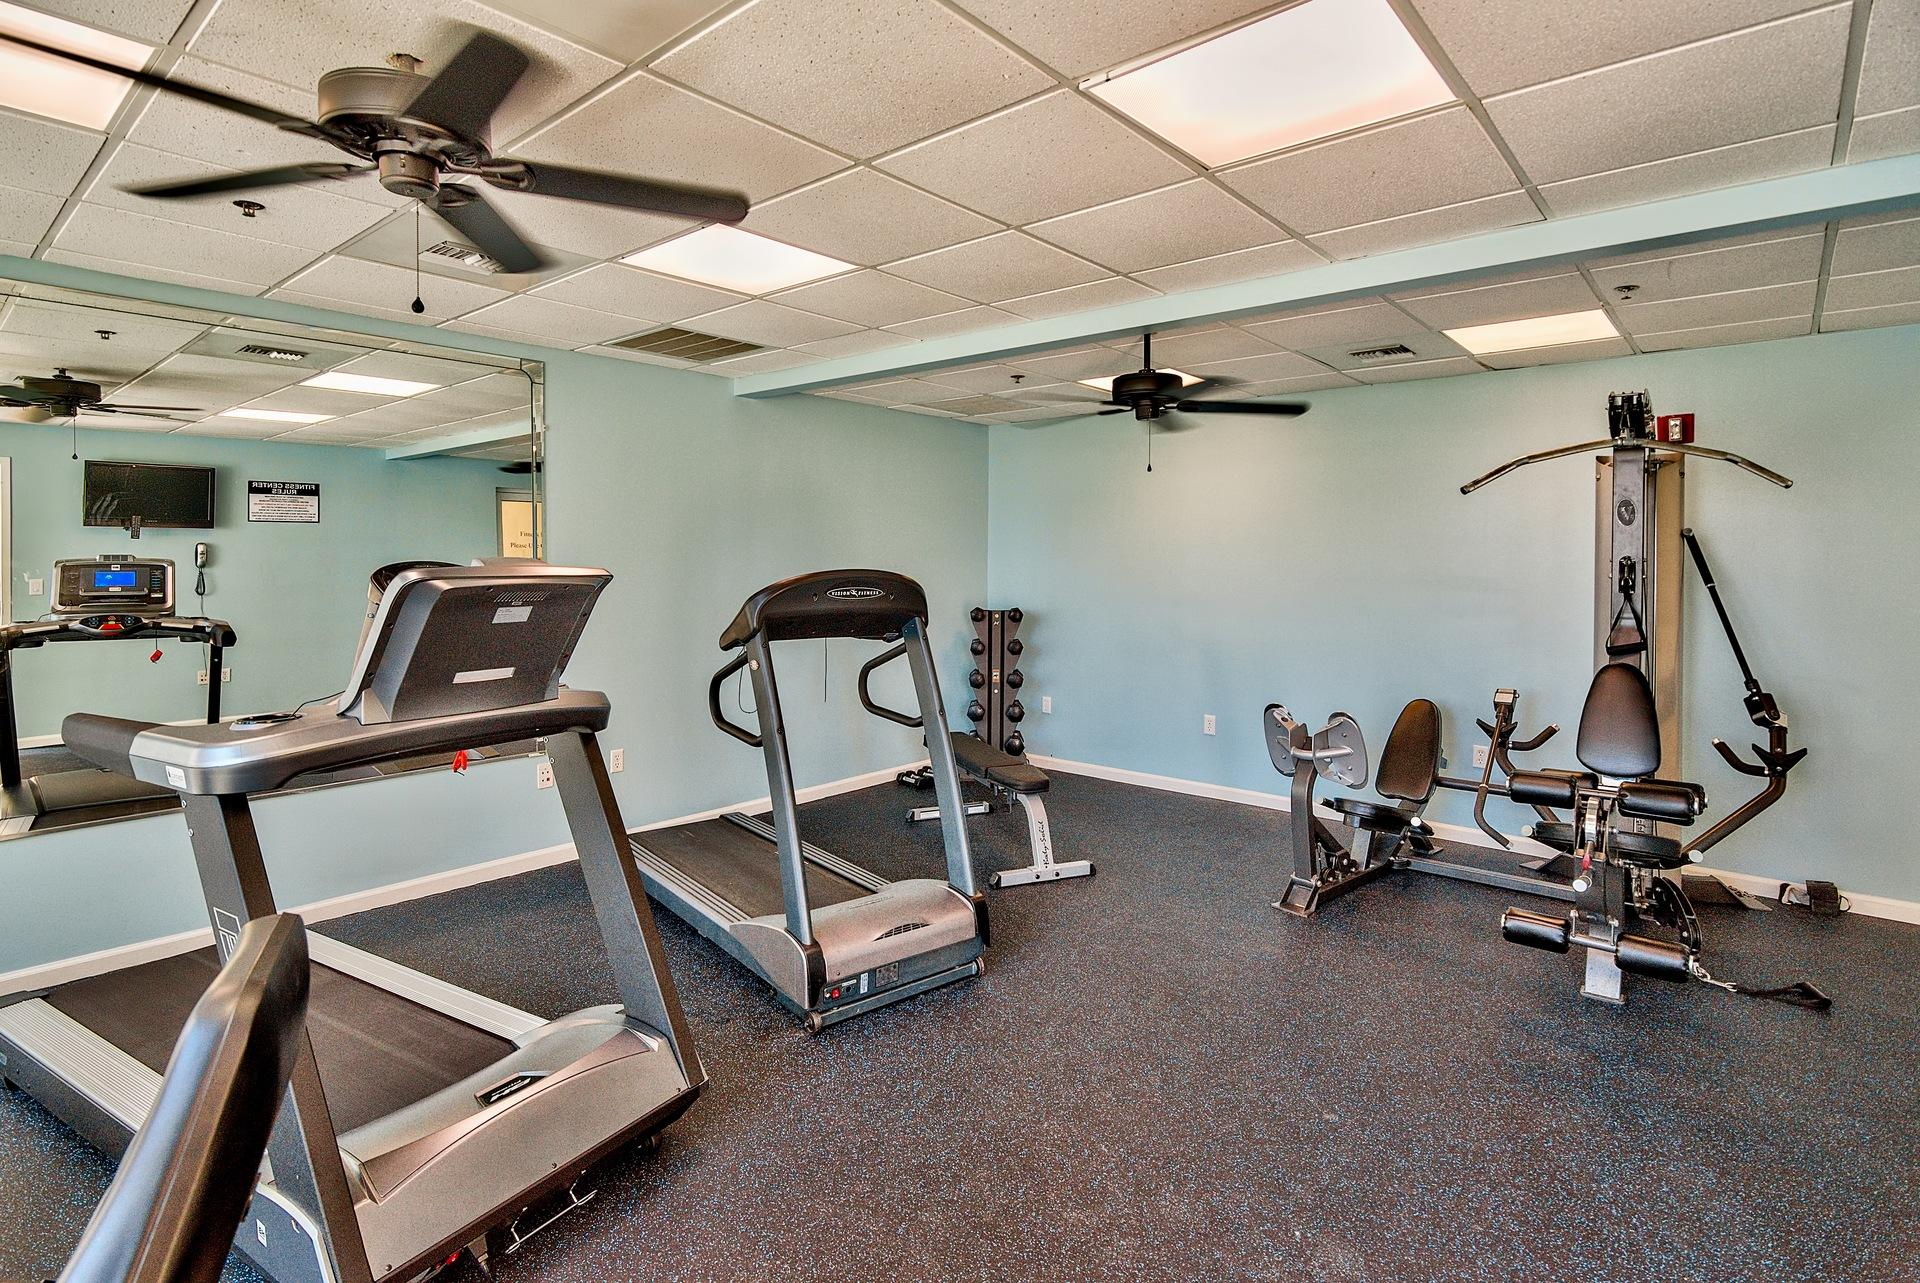 LeeWard Key workout room!